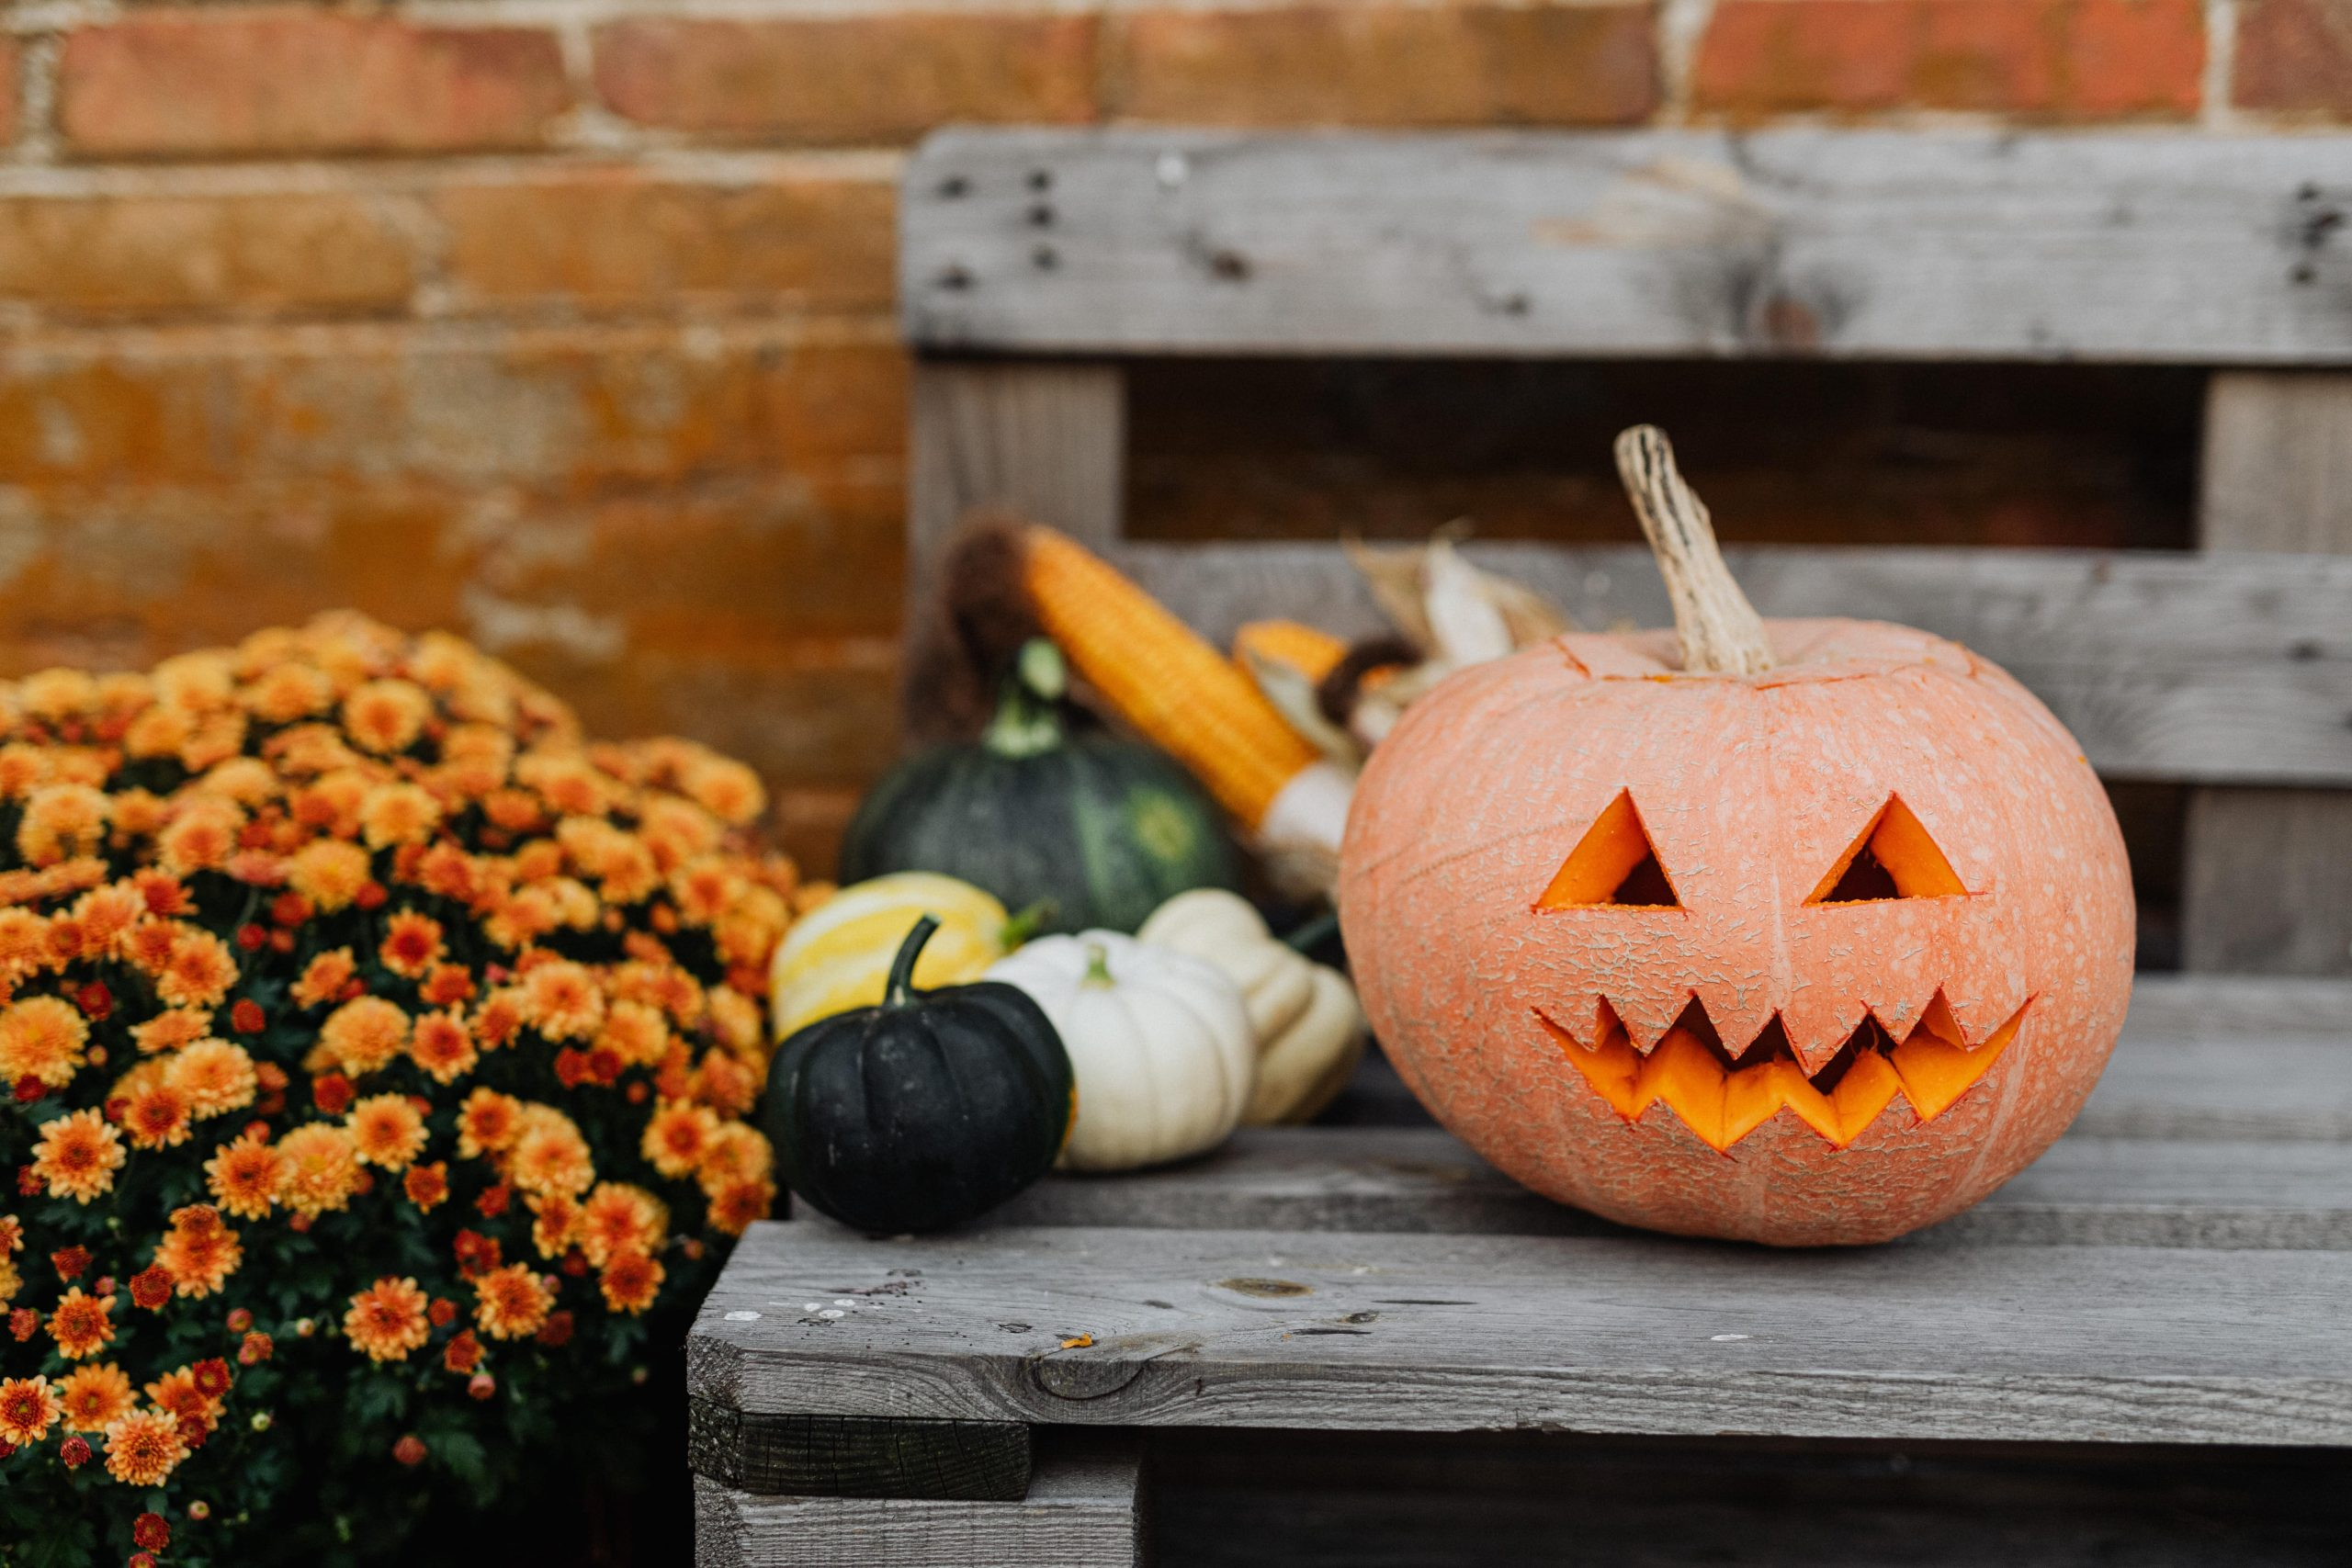 A carved pumpkin sits on a wooden bench